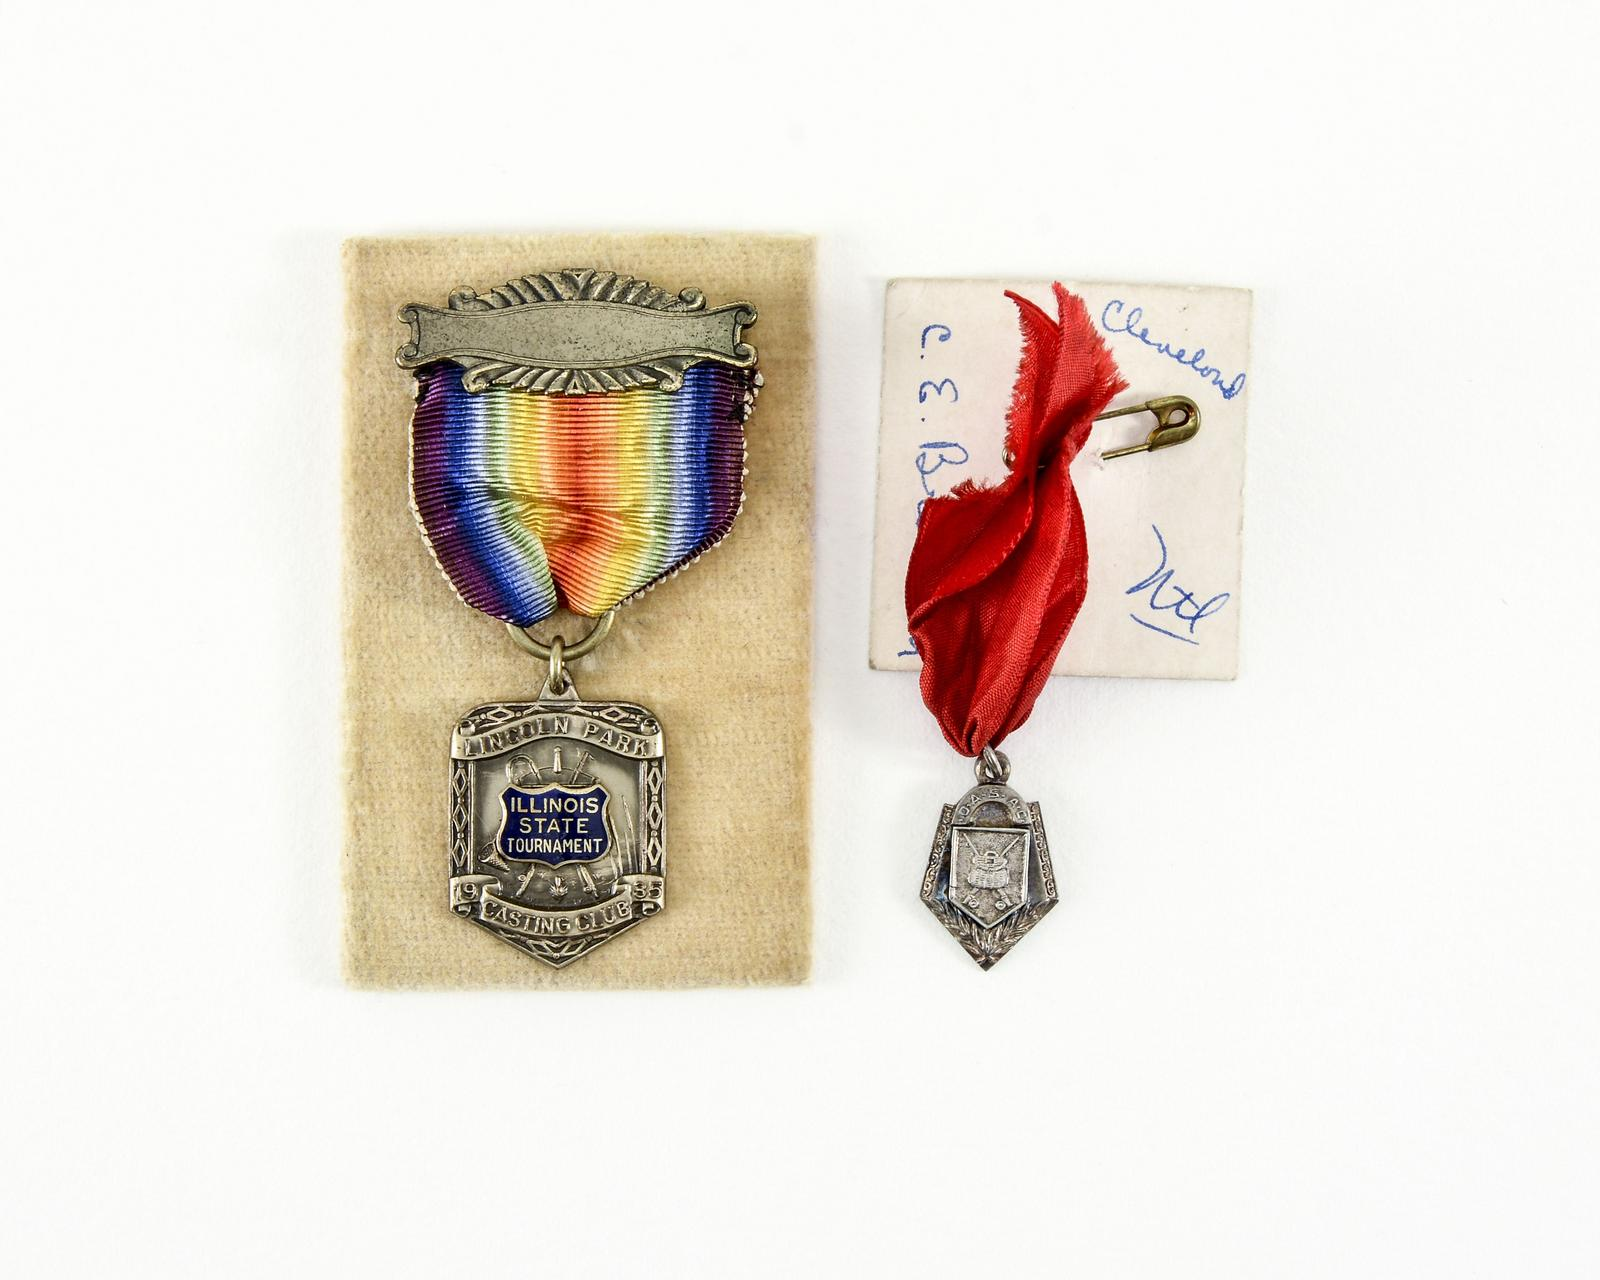 2 Eddie Braddon Casting Medals | Lang's Auction Inc